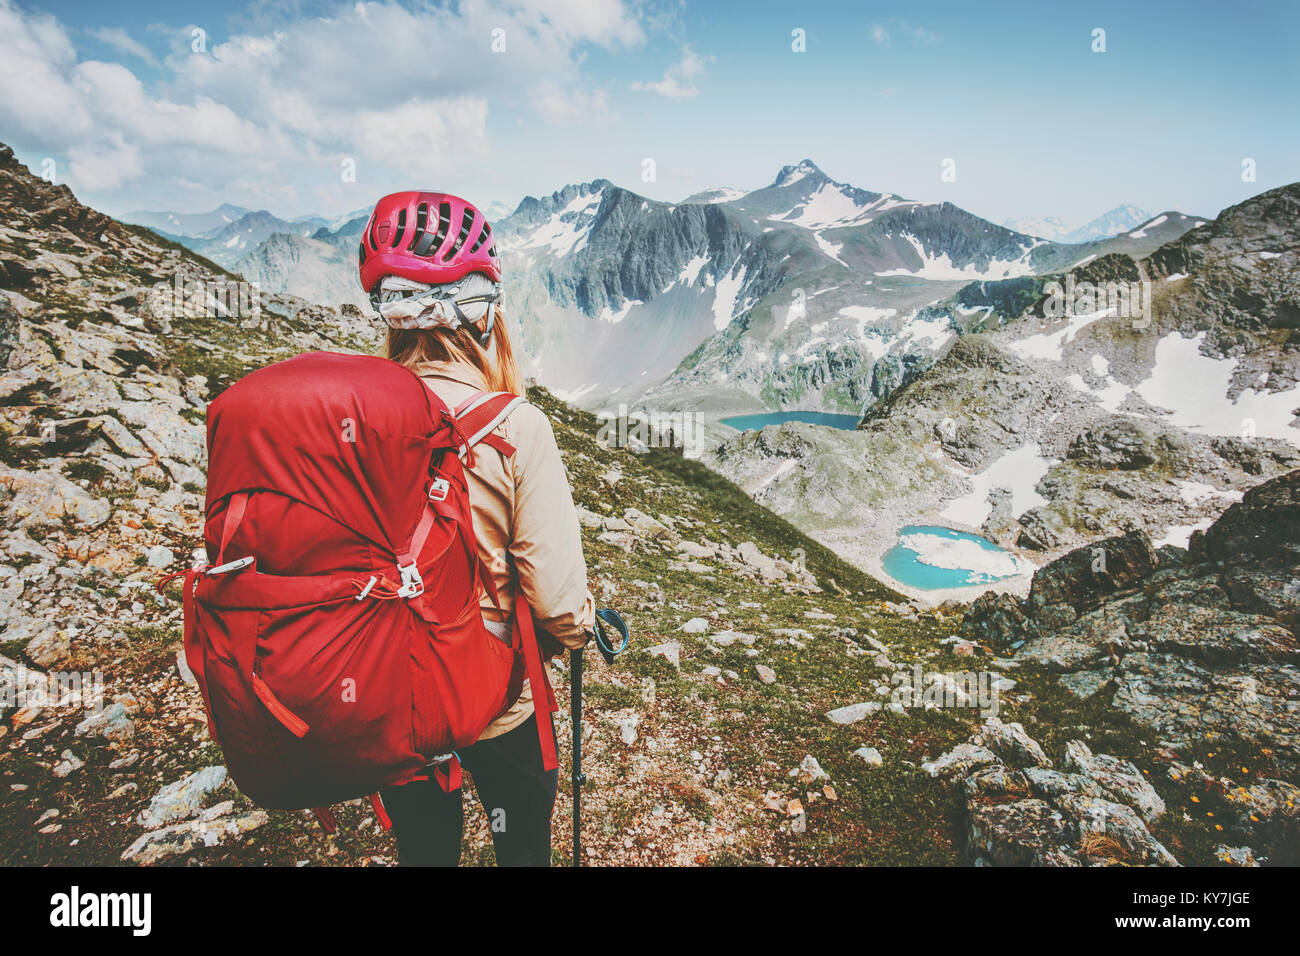 Adventurer tourist hiking in mountains with backpack Travel Lifestyle hiking adventure concept summer vacations - Stock Image